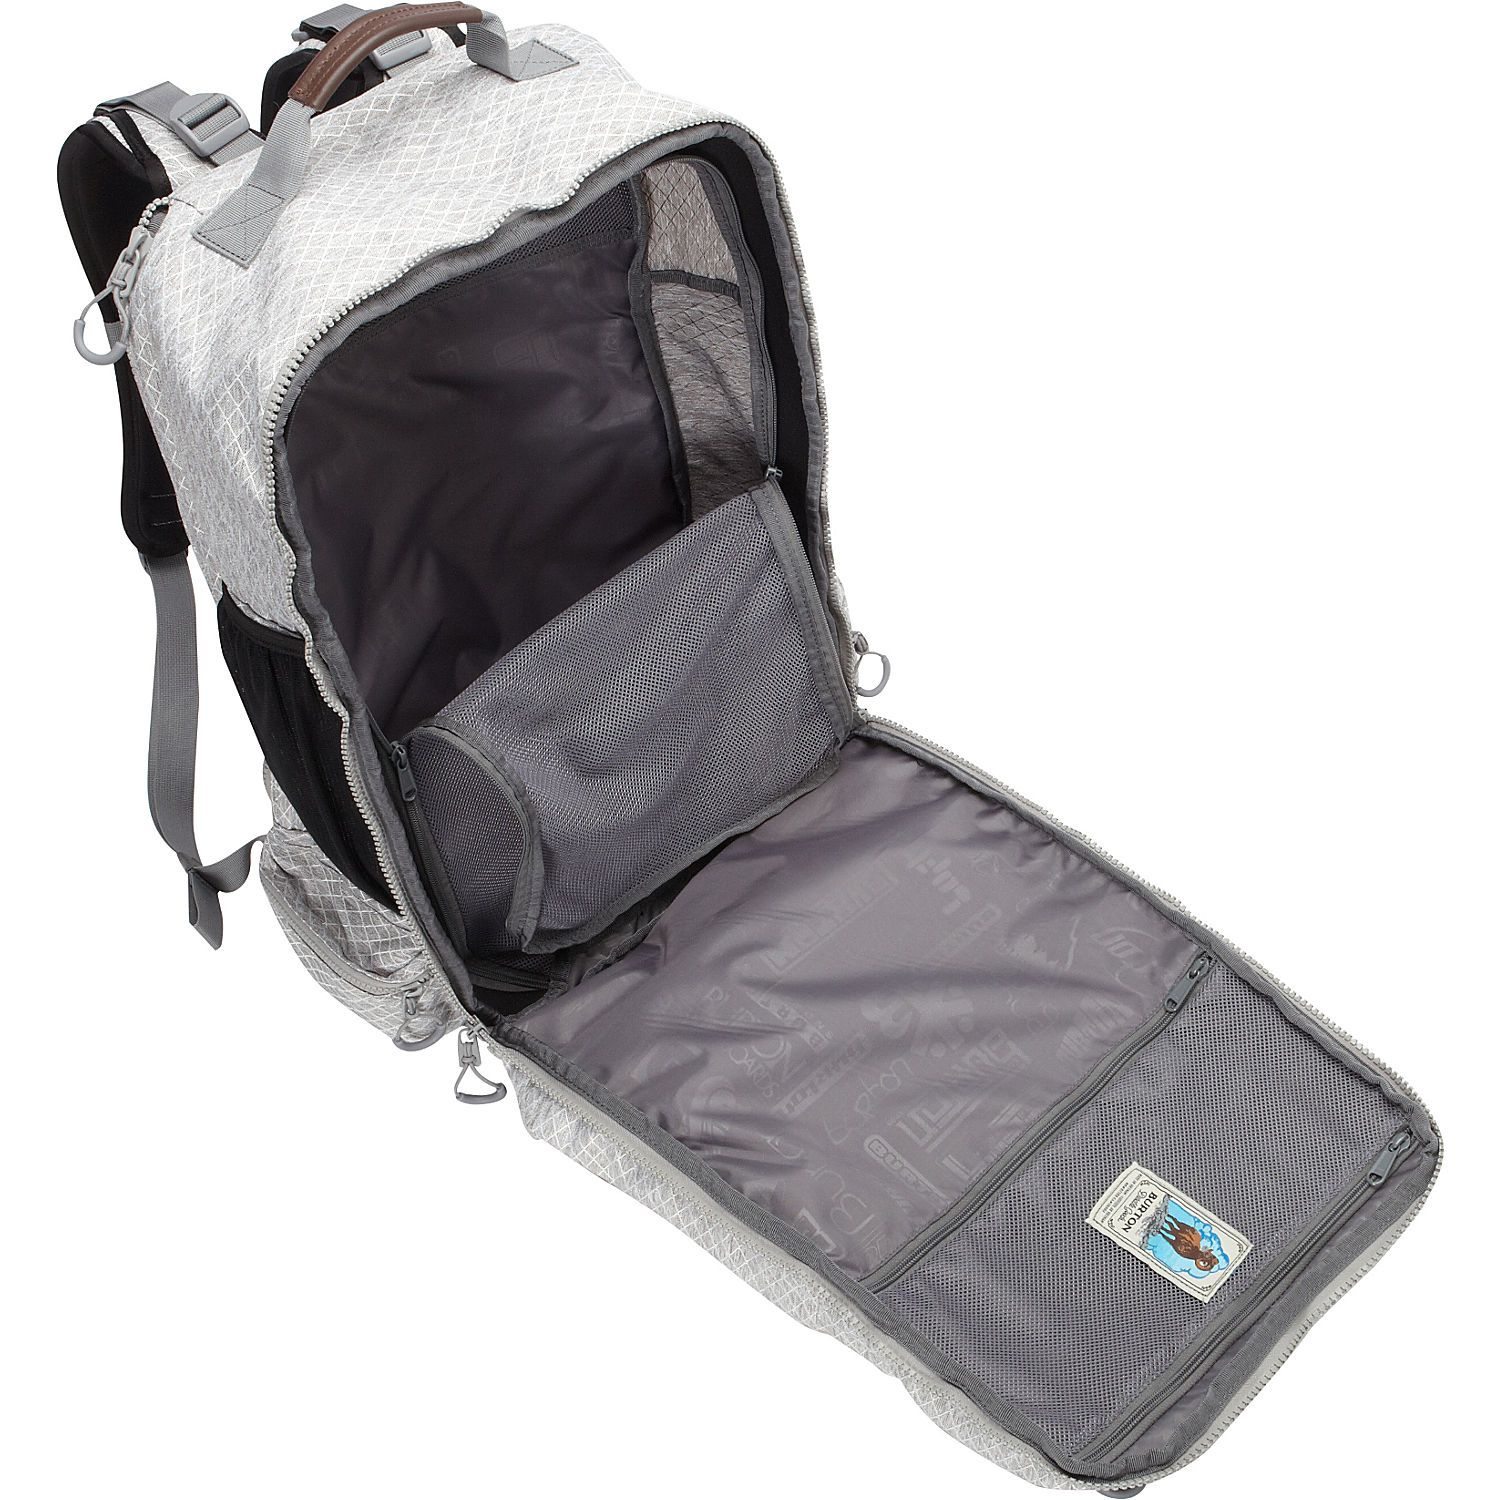 7ce3f9ae5277 Buy the Burton Traverse Pack at eBags - Interior and exterior storage  pockets…